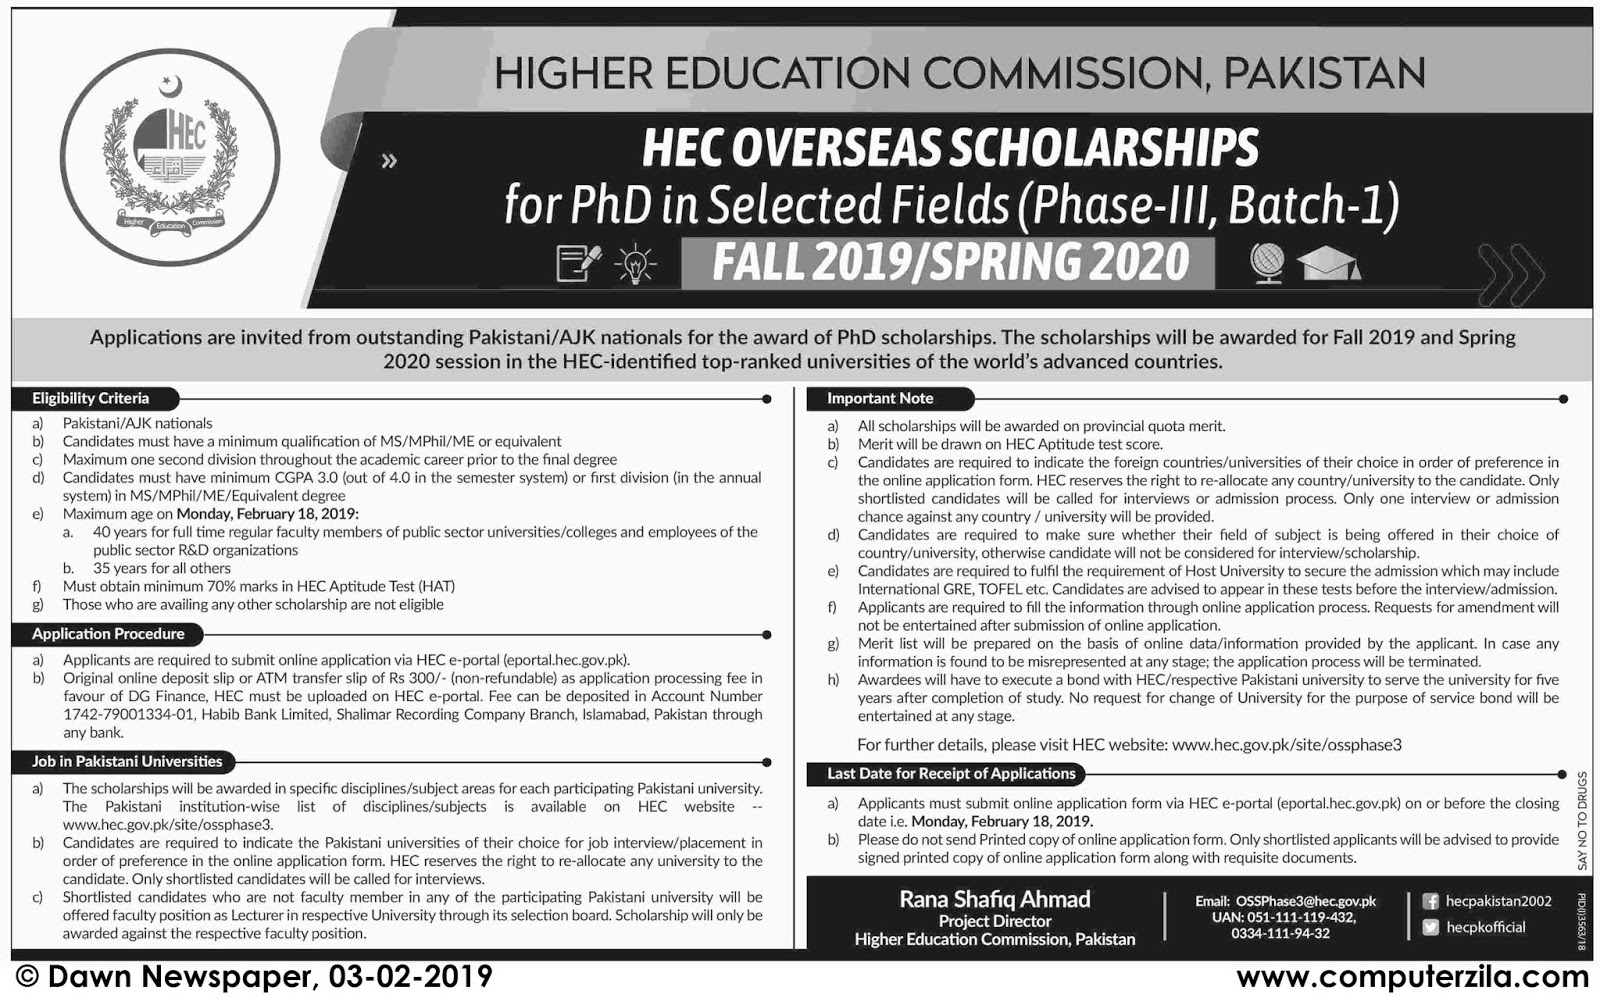 Higher Education Commission, Pakistan HEC Overseas Scholarships for PhD